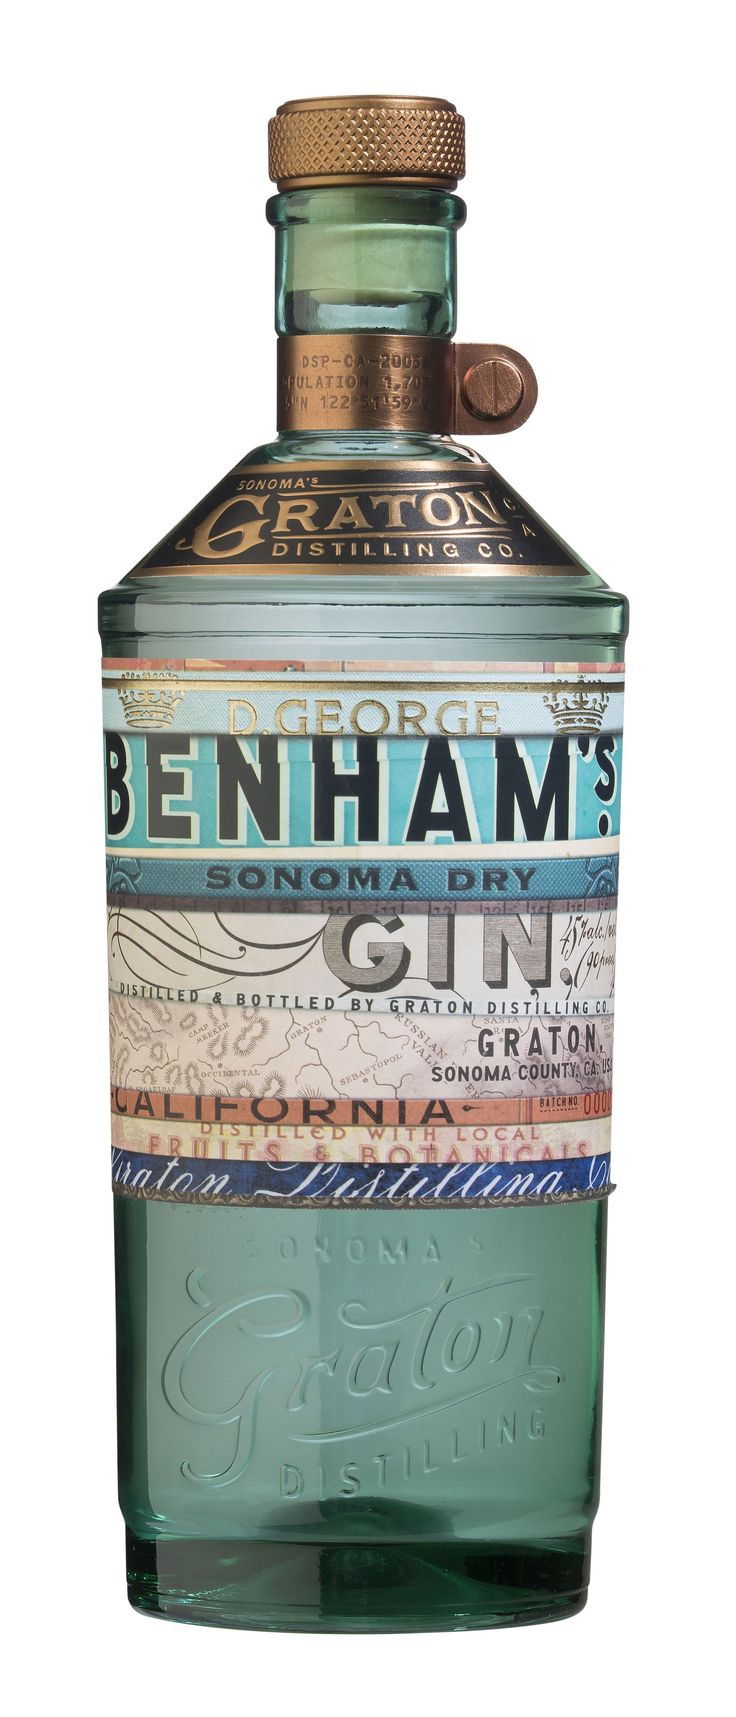 If you like gin, you'll love this one! Distinct flavor, but works well in a variety of drinks. #gindrinks #gincocktails